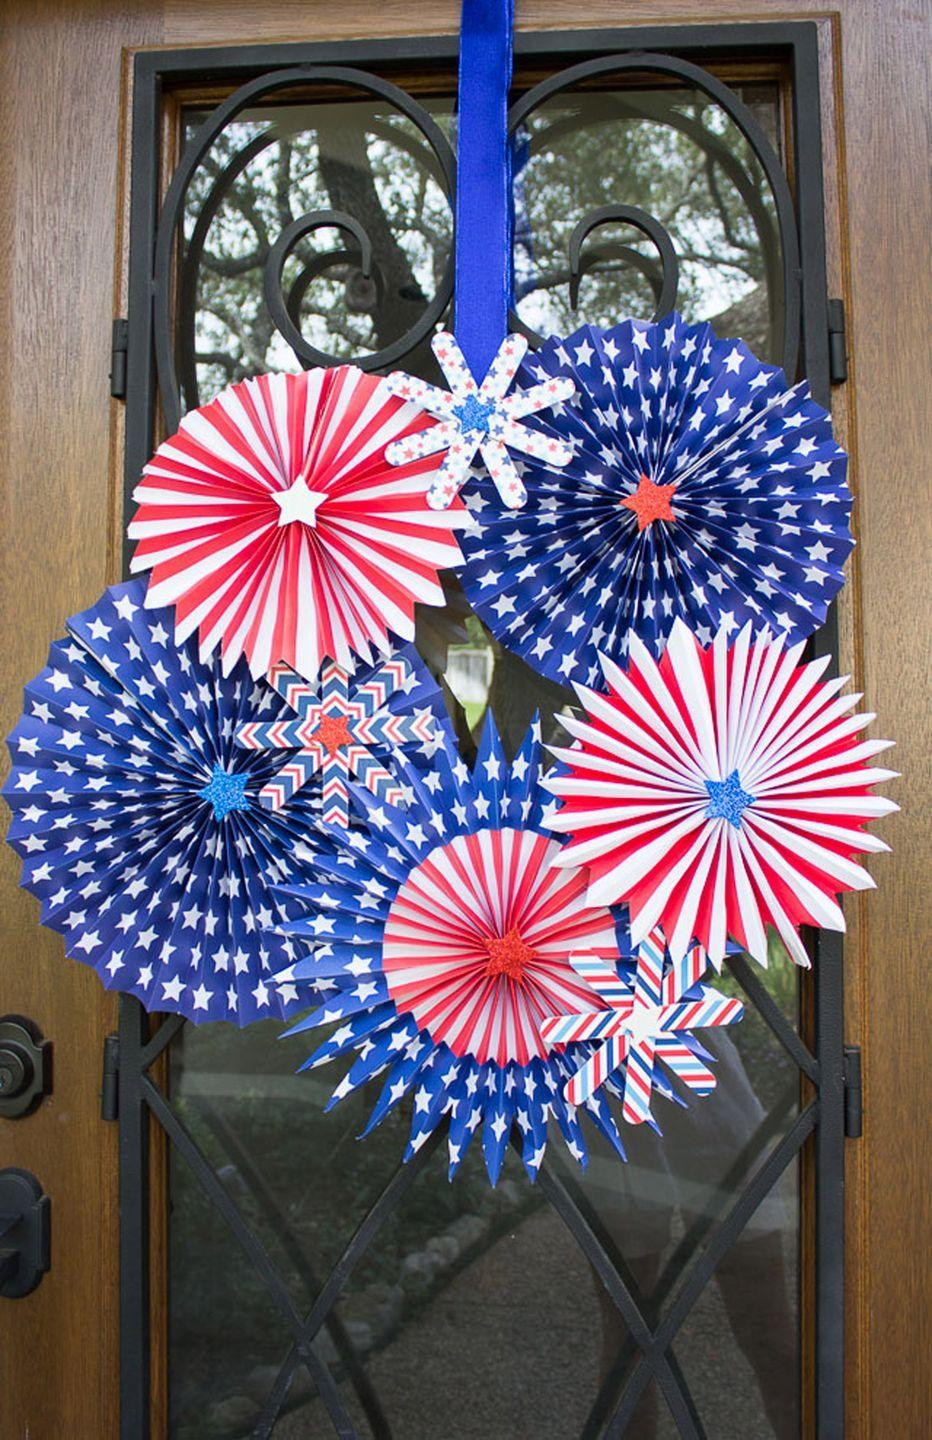 """<p>Fireworks are sure to last all day and night with this patriotic pinwheel wreath.<br></p><p><strong>Get the tutorial at <a href=""""http://www.designimprovised.com/2014/06/4th-of-july-wreath.html"""" rel=""""nofollow noopener"""" target=""""_blank"""" data-ylk=""""slk:Design Improvised"""" class=""""link rapid-noclick-resp"""">Design Improvised</a>.</strong></p><p><a class=""""link rapid-noclick-resp"""" href=""""https://www.amazon.com/Patriotic-Ddecorations-American-Independence-Supplies/dp/B07RN3Y6G9/ref=dp_prsubs_2?pd_rd_i=B07RN3Y6G9&psc=1&tag=syn-yahoo-20&ascsubtag=%5Bartid%7C10050.g.4464%5Bsrc%7Cyahoo-us"""" rel=""""nofollow noopener"""" target=""""_blank"""" data-ylk=""""slk:SHOP PATRIOTIC PAPER PINWHEELS"""">SHOP PATRIOTIC PAPER PINWHEELS</a></p>"""